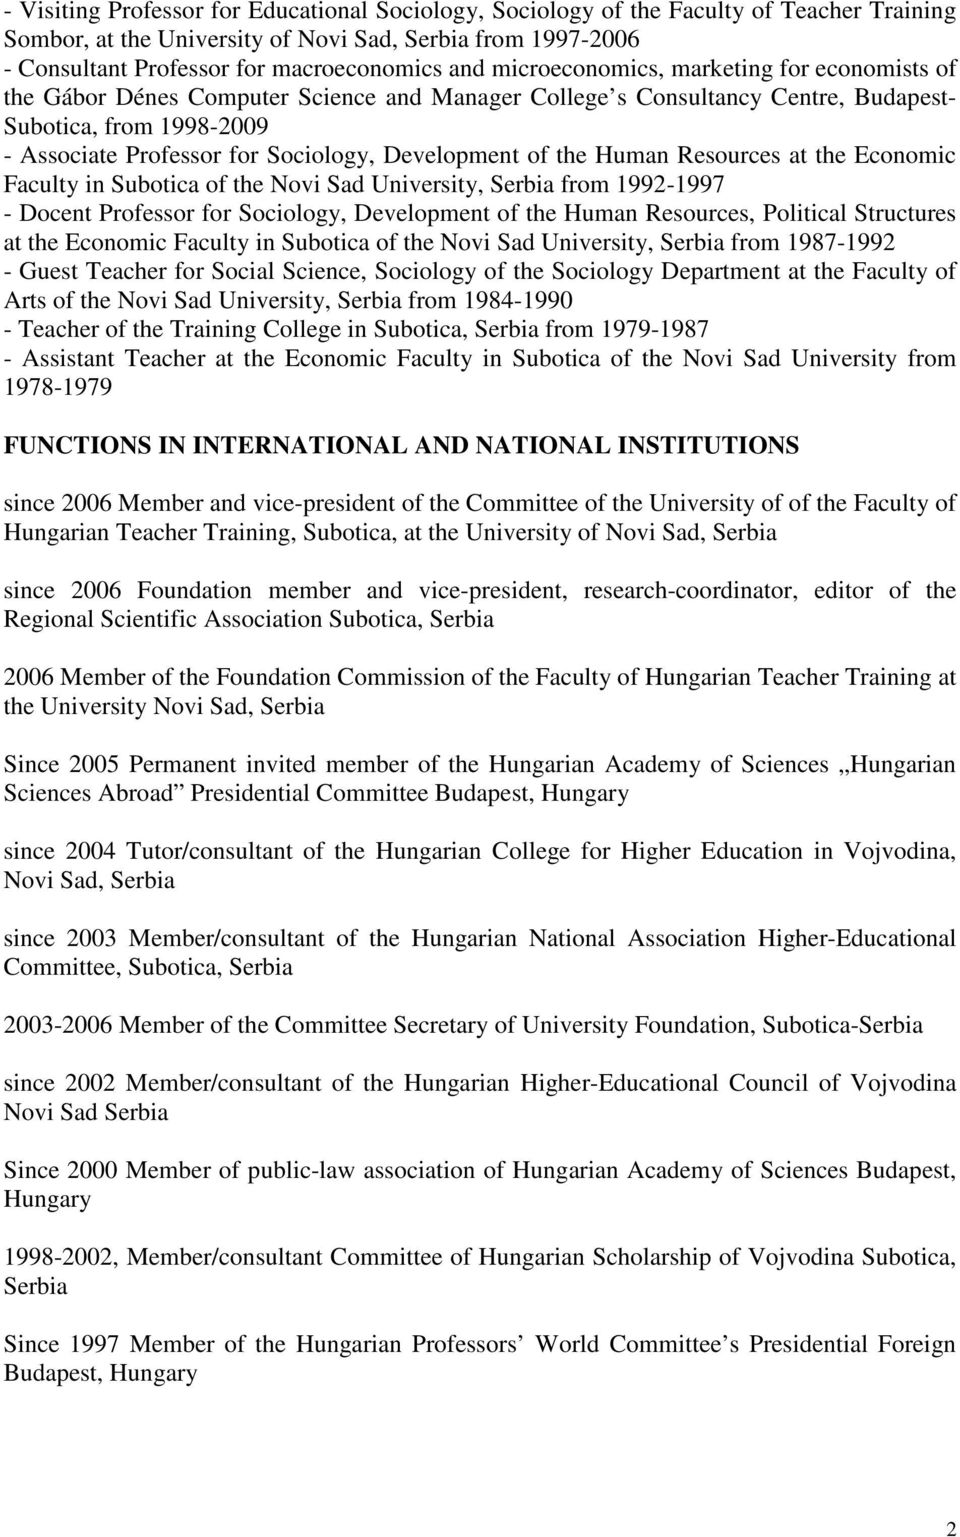 Development of the Human Resources at the Economic Faculty in Subotica of the Novi Sad University, Serbia from 1992-1997 - Docent Professor for Sociology, Development of the Human Resources,